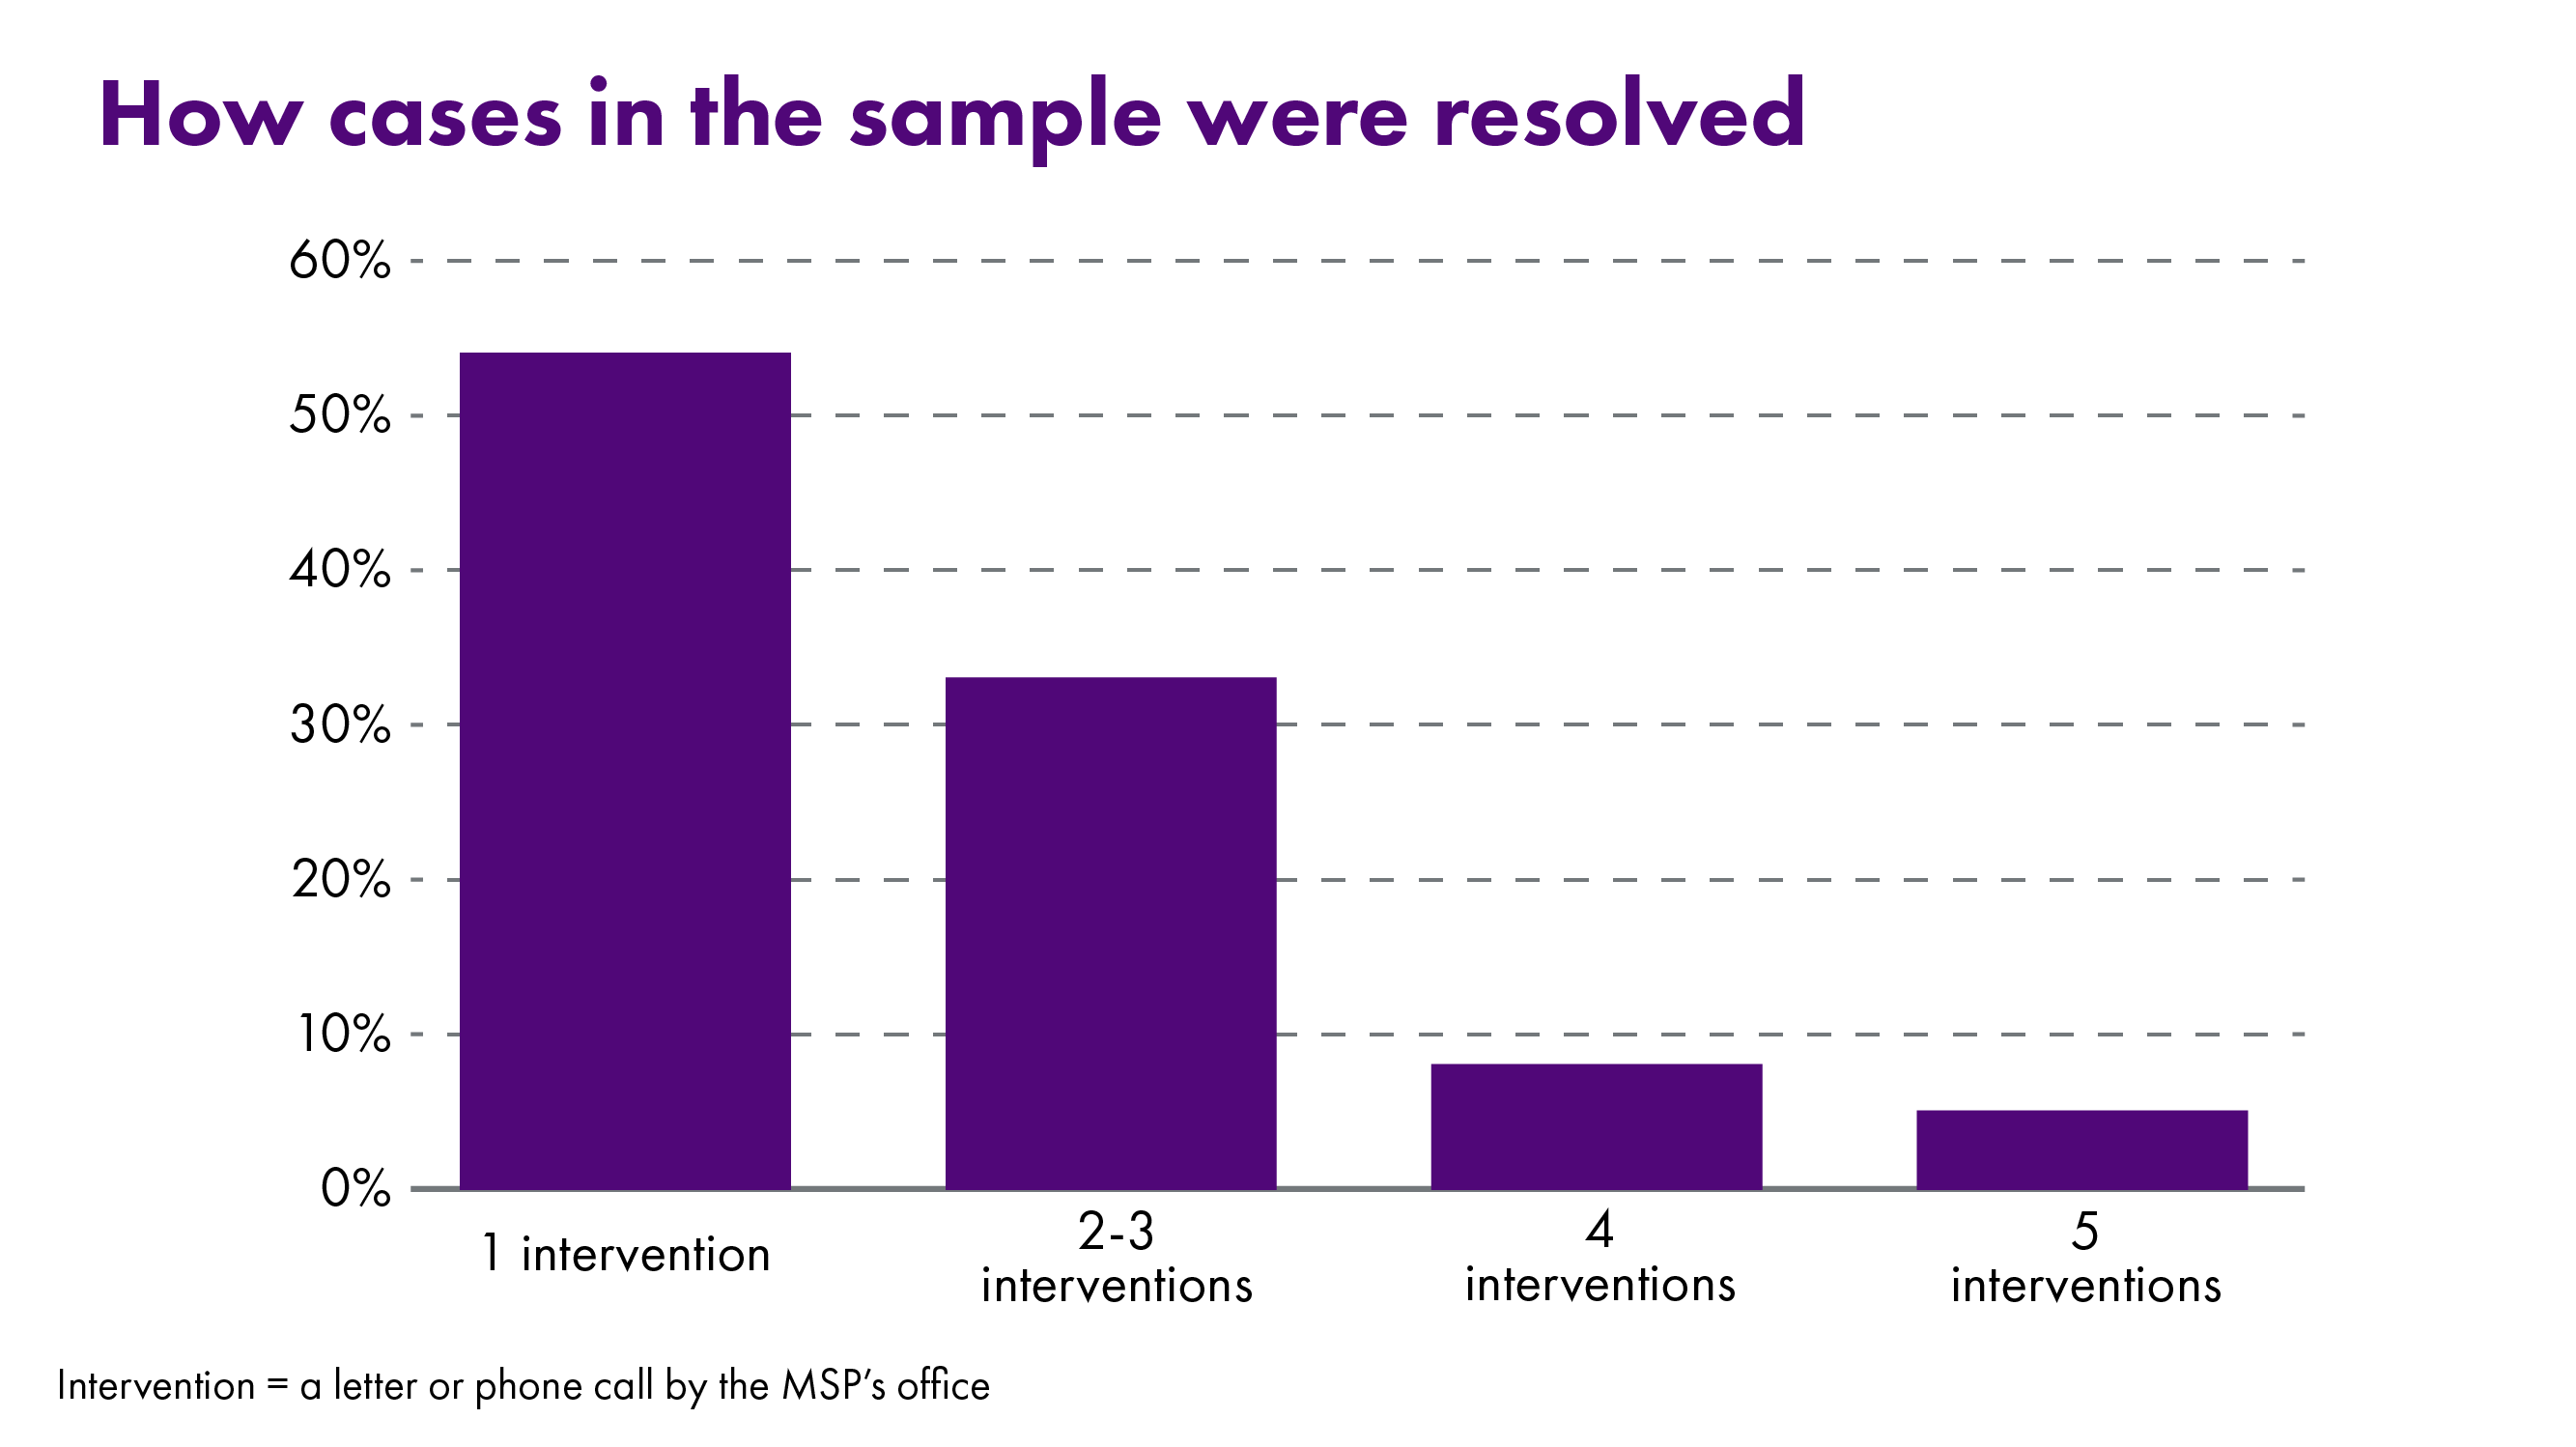 Infographic looking at how constituents' cases are resolved - 54% are resolved after one intervention, 33% need two to three interventions, 8% require four interventions and 5% require more than five interventions.